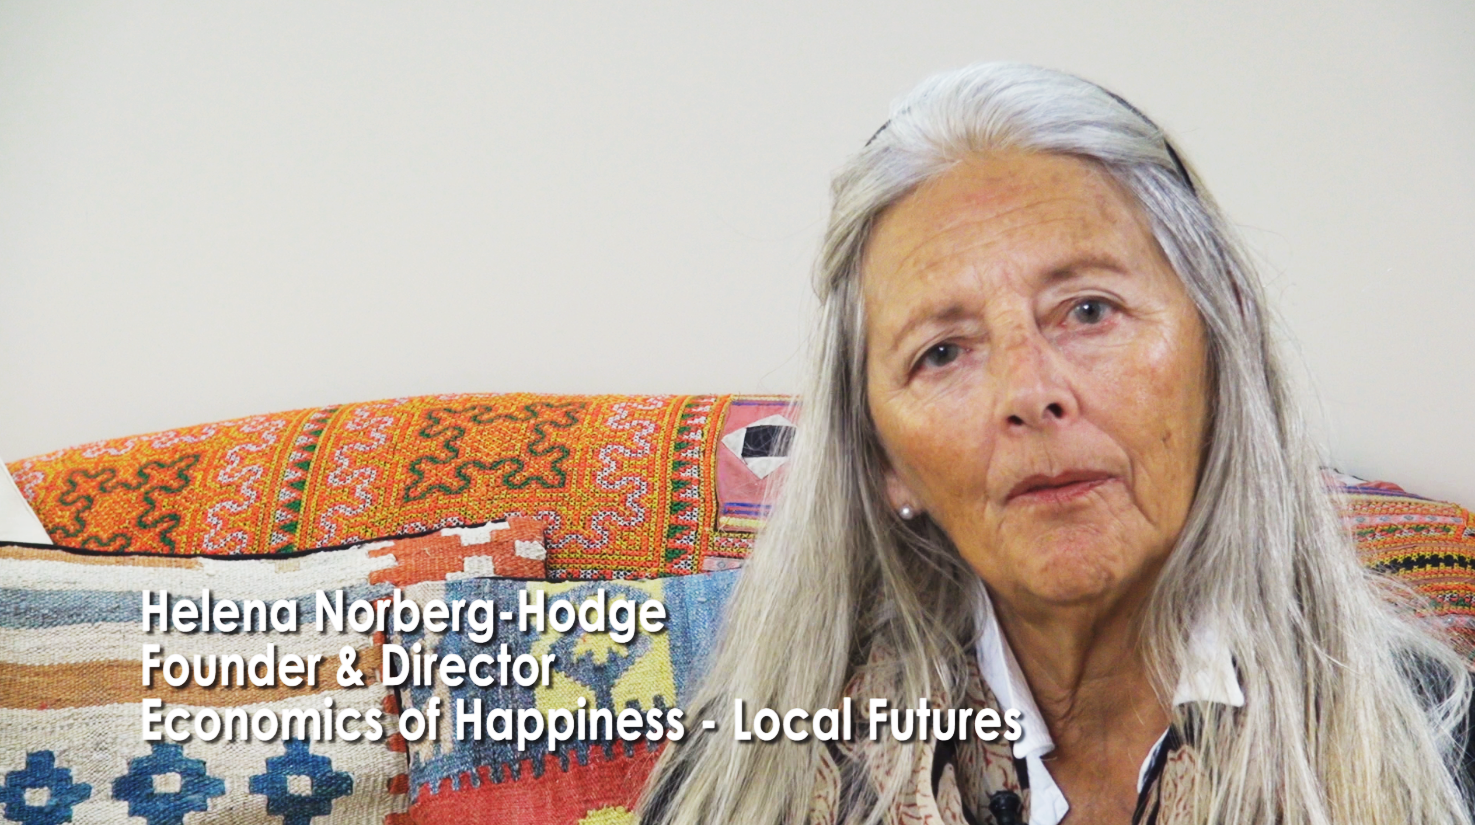 Helena Norberg Hodge is co-founder Local Futures